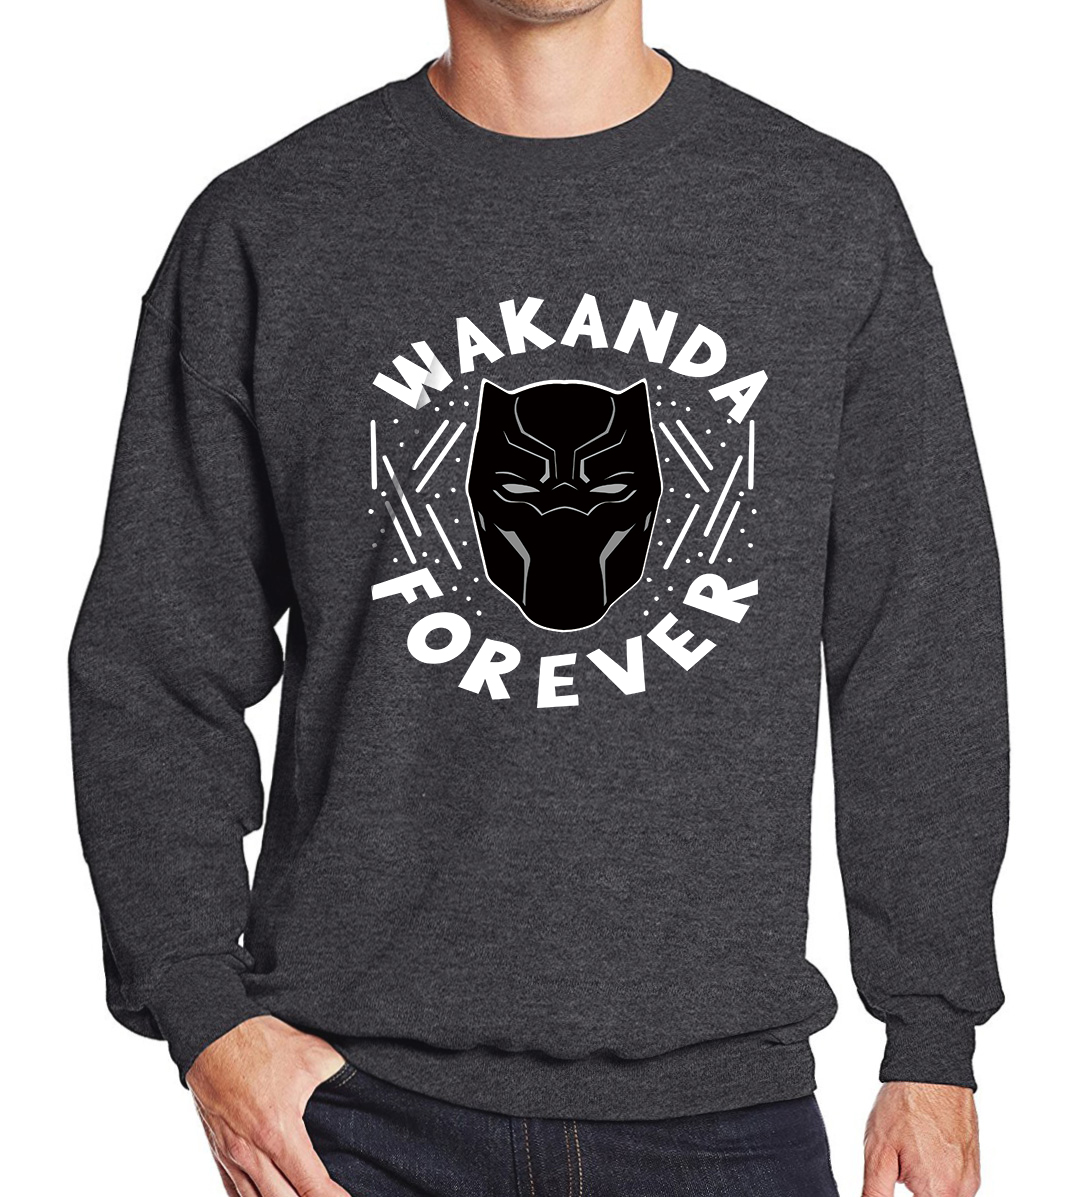 Mens Hoodie 2019 Autumn Winter Fleece Sweatshirt For Men WAKANDA FOREVER Fashion Streetwear Hoody Black Panther Harajuku Hoodies